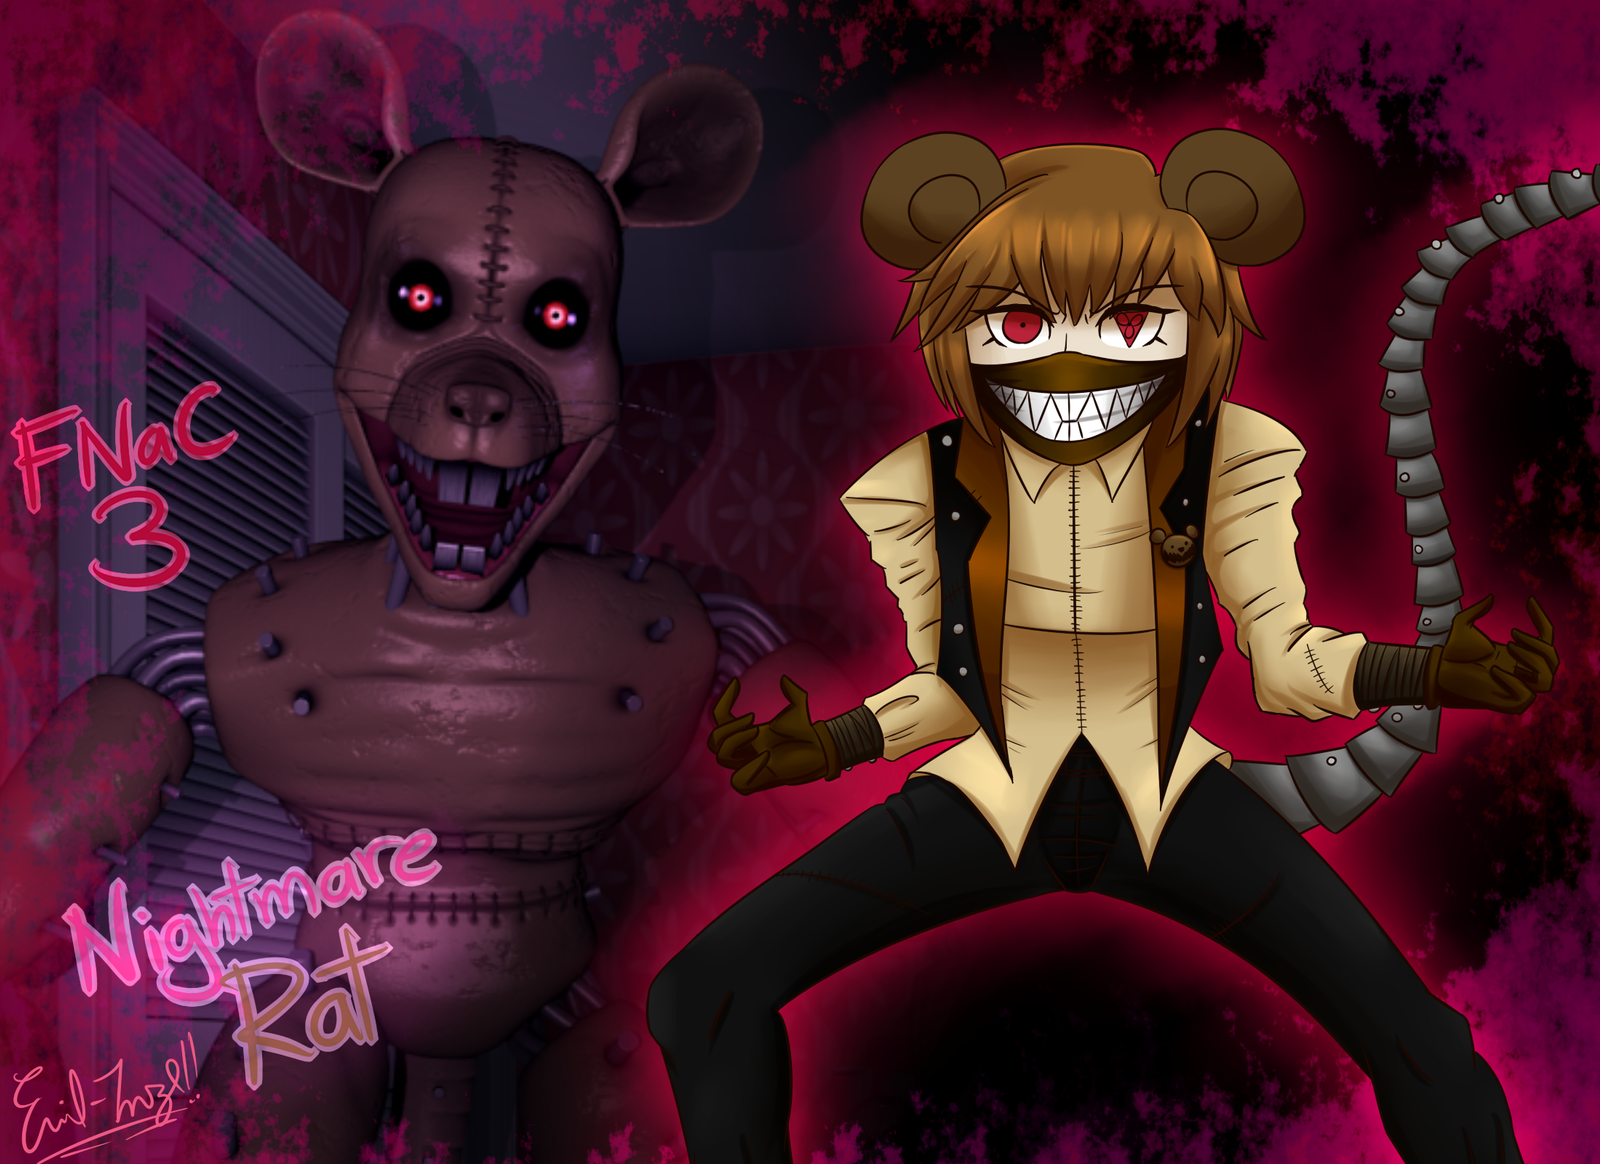 FNaC 3: Nightmare Rat by Emil-Inze on DeviantArt